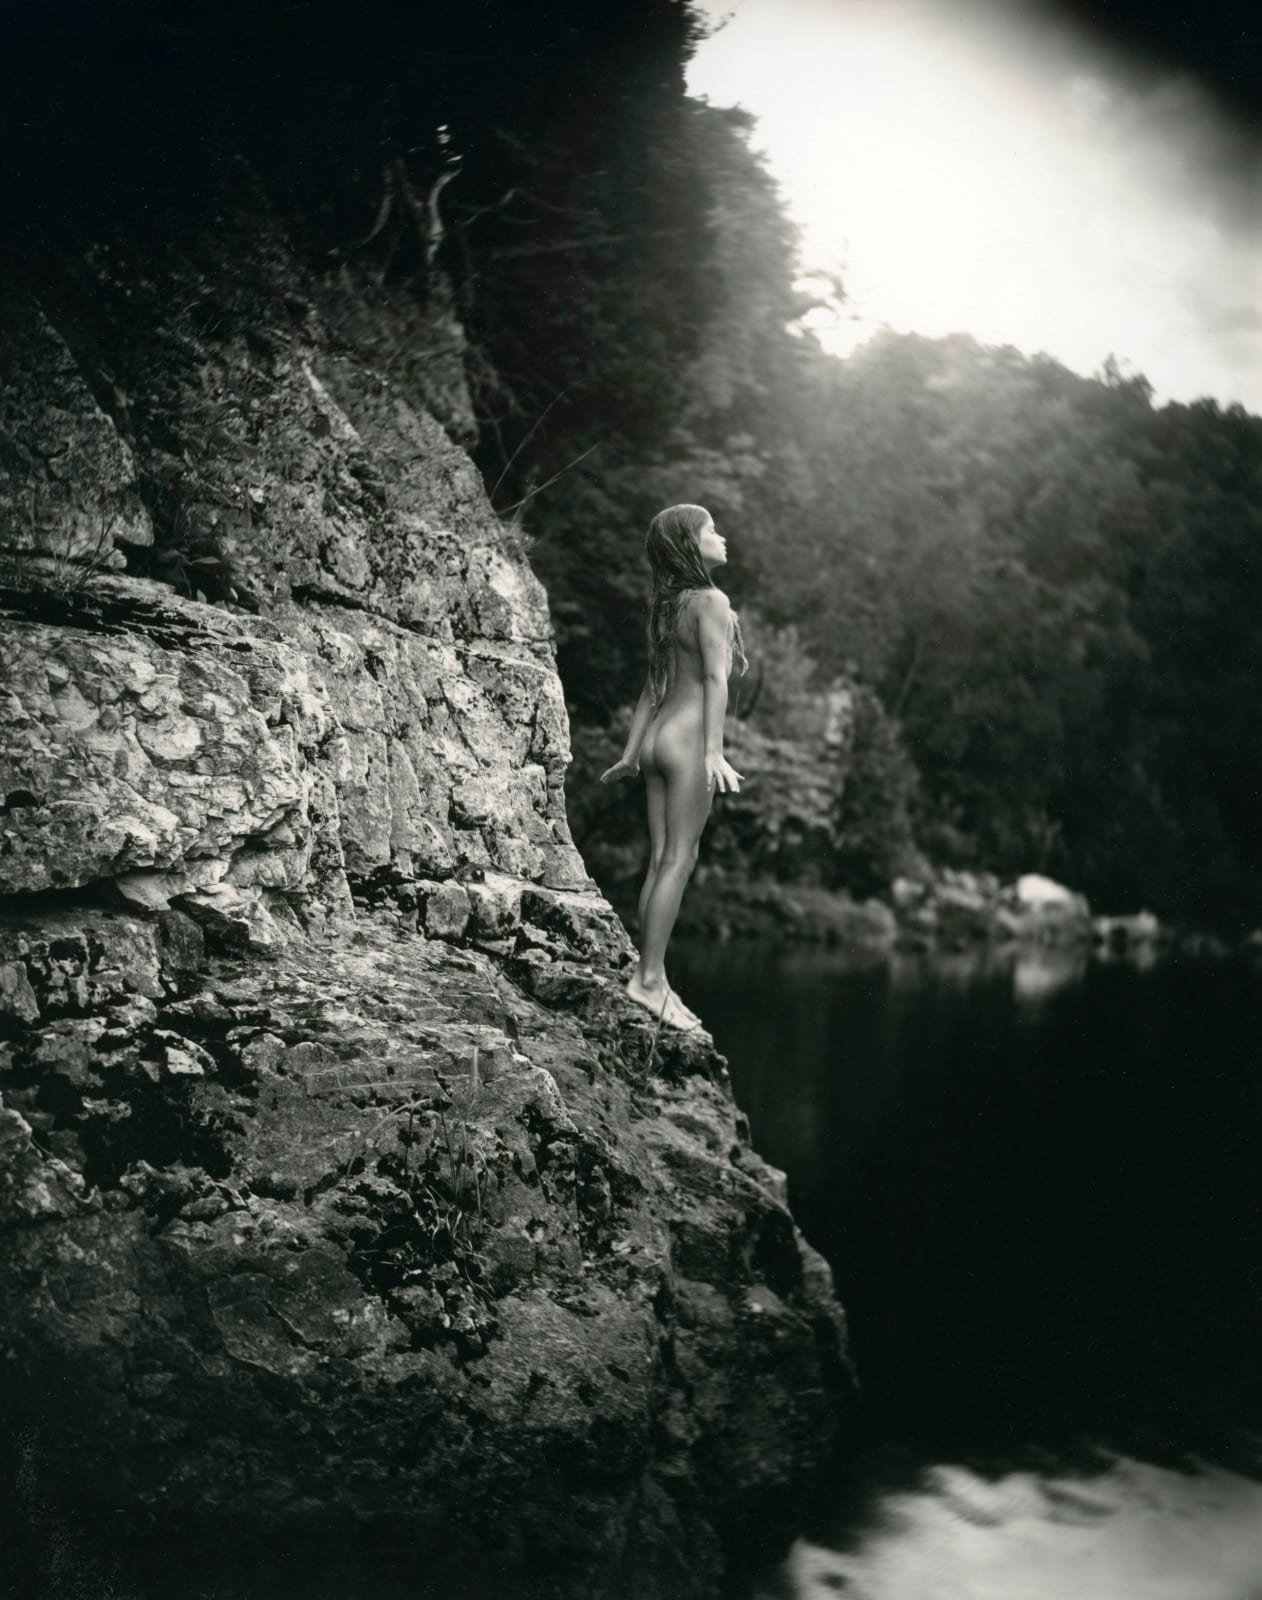 Sally Mann Immediate Family series, Jessie at 9, Jessie standing on cliff about to jump into water